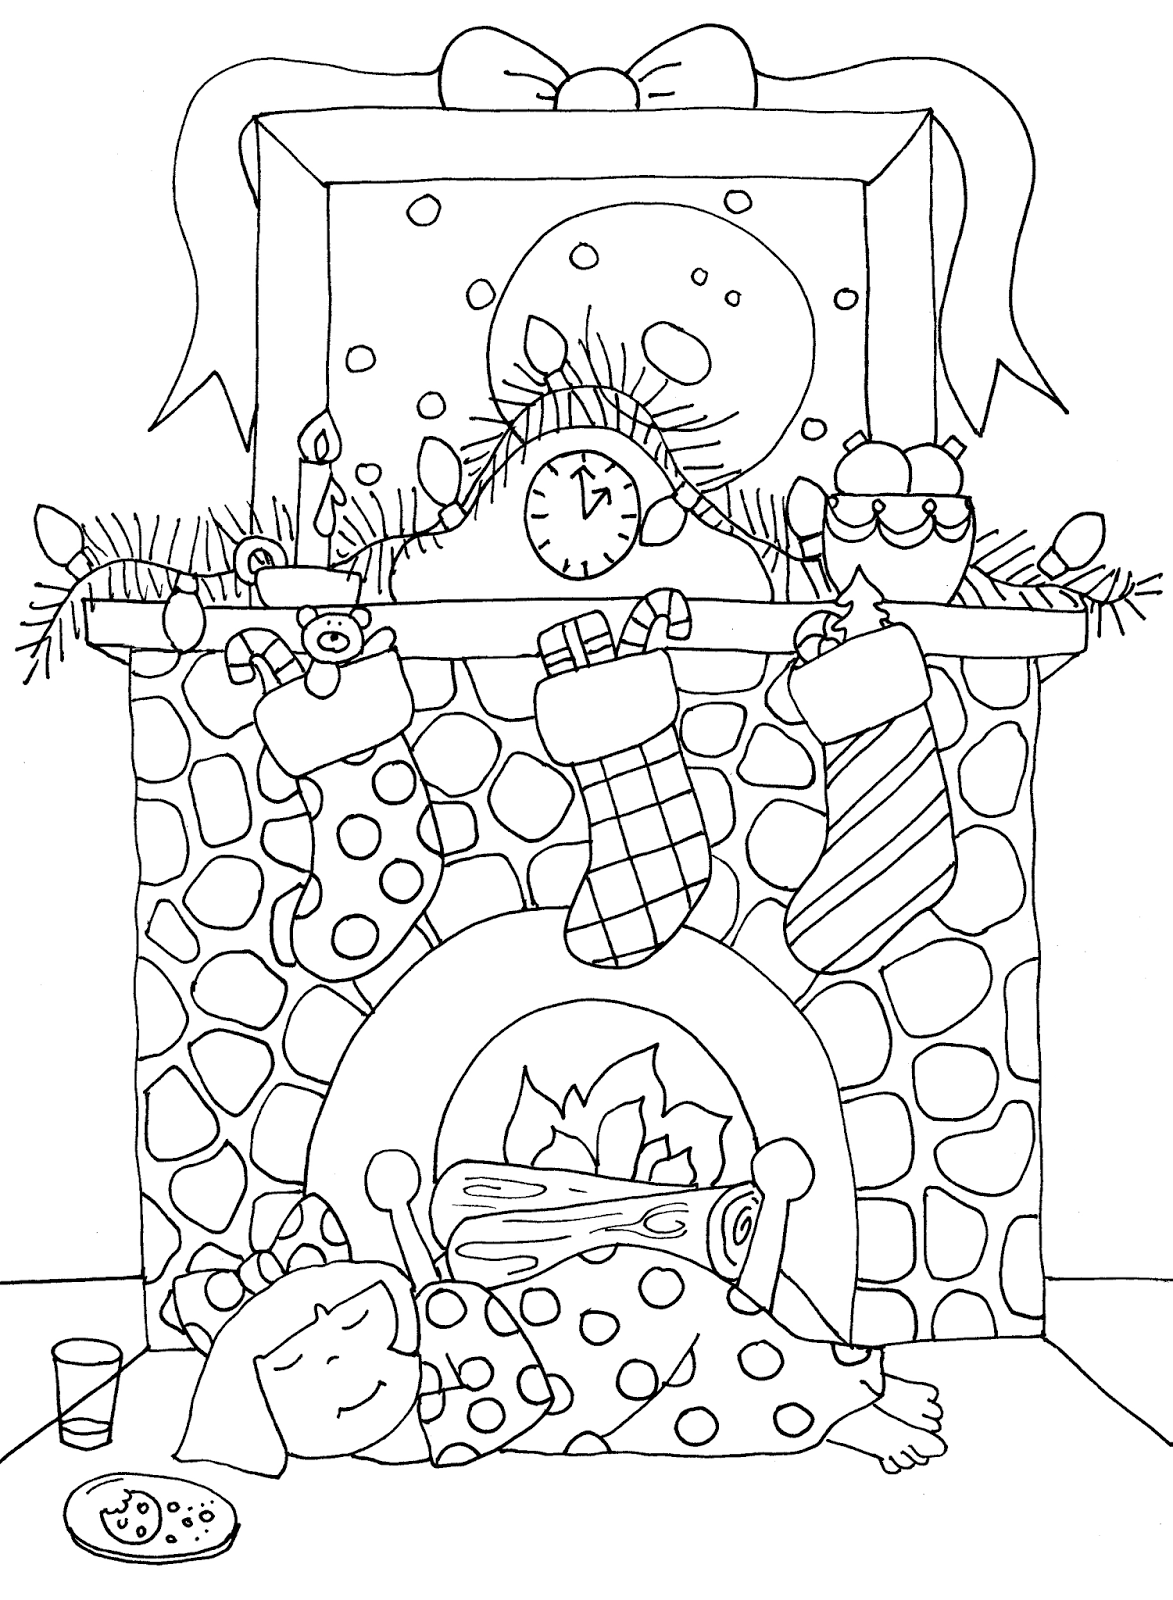 coloring book ~ Excelent Mary Engelbreit Coloringages Book Winter Scene  Christmas For Adults That Willrint Free Templates 84 Excelent Mary  Engelbreit Coloring Pages ...   1600x1173